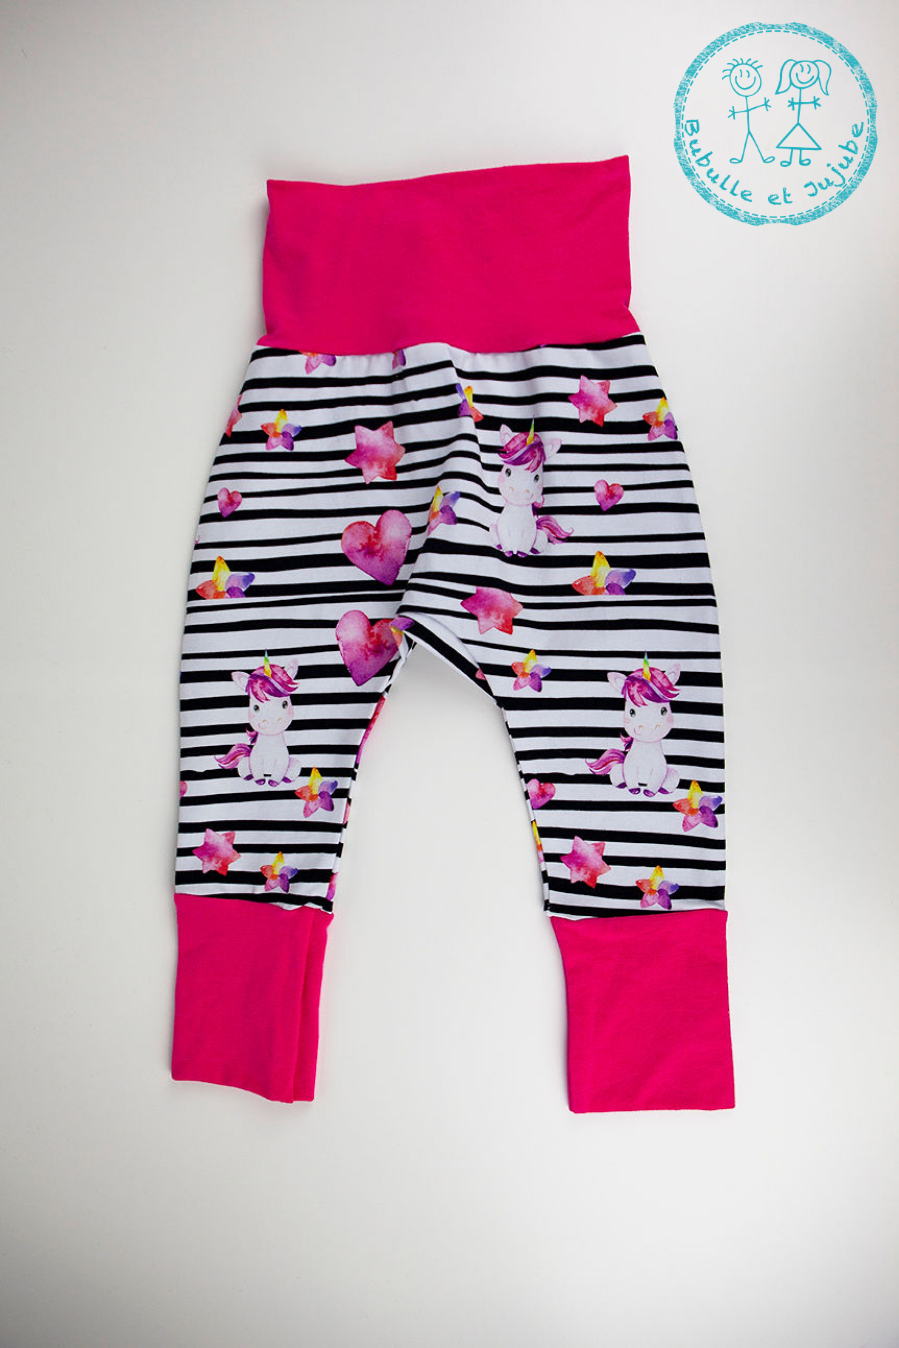 Pantalons évolutifs - Licornes rayées / Grow with me pants - Unicorns